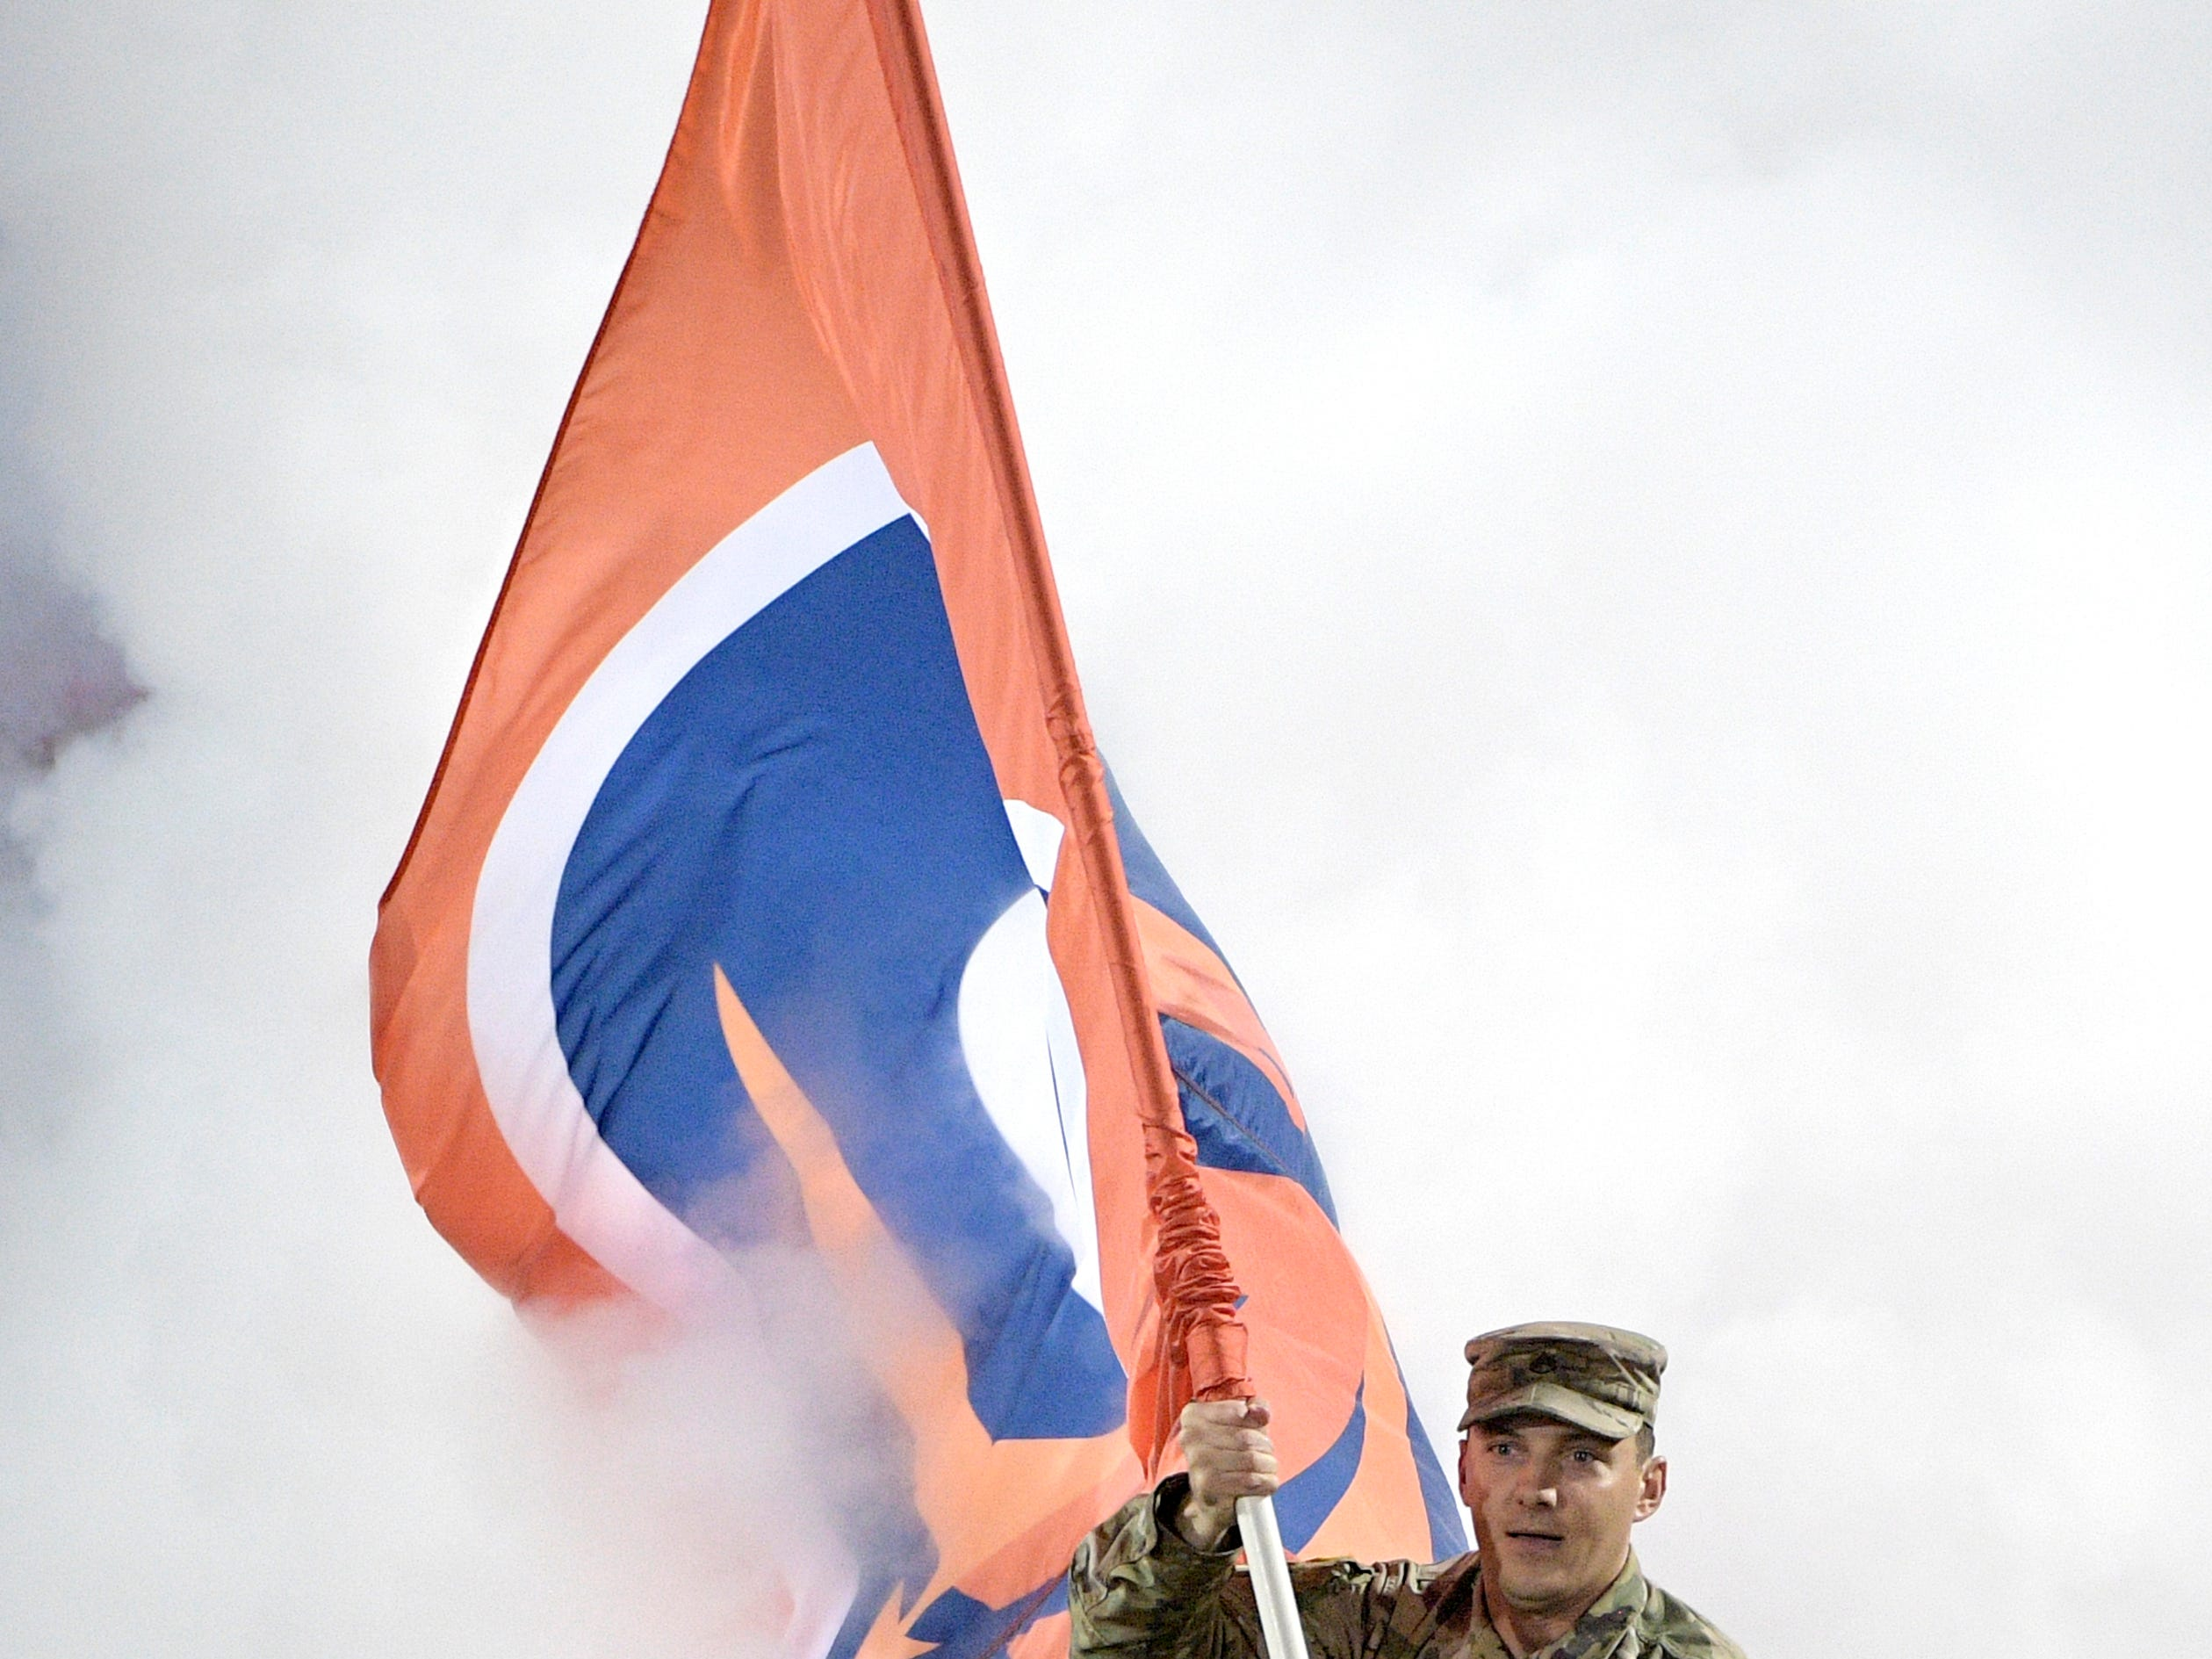 A member of the U.S. military carries a team flag onto the field before an Alliance of American Football game between the Orlando Apollos and the Atlanta Legends on Saturday, Feb. 9, 2019, in Orlando, Fla. (AP Photo/Phelan M. Ebenhack)